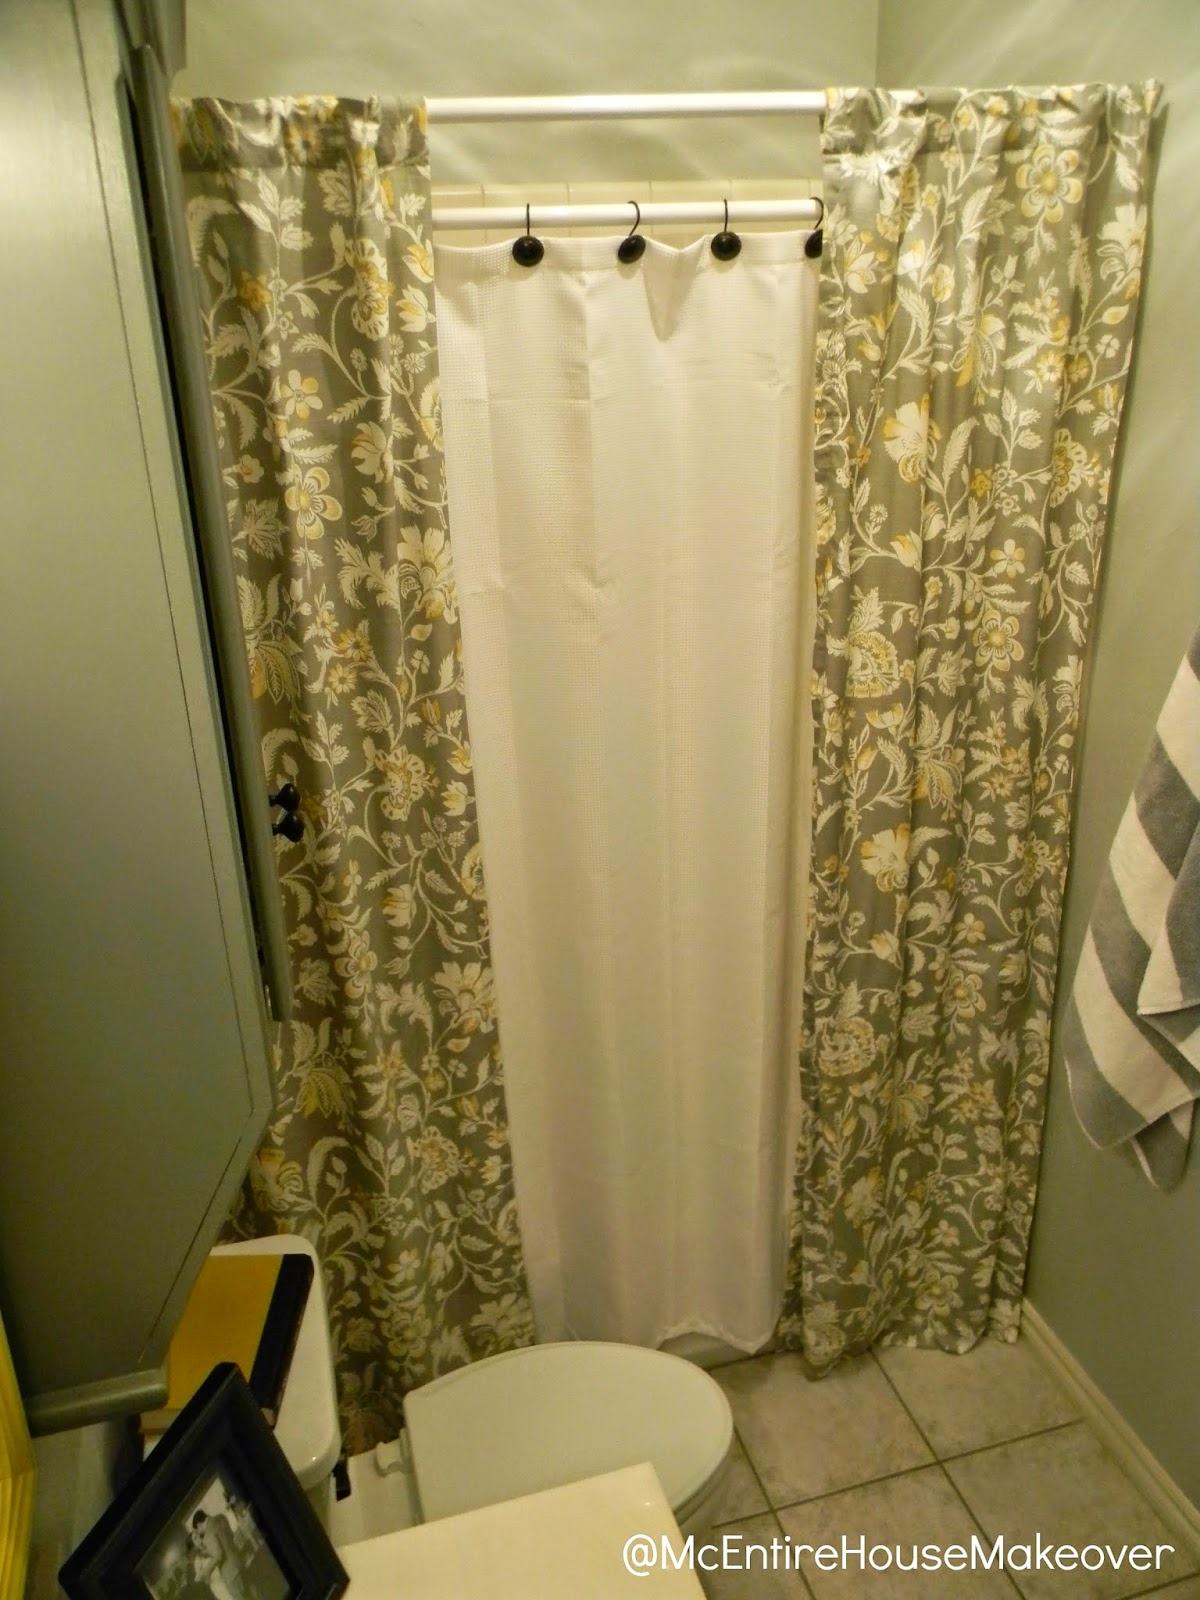 McEntire House Makeover: Making 2 Shower Curtain Panels ...